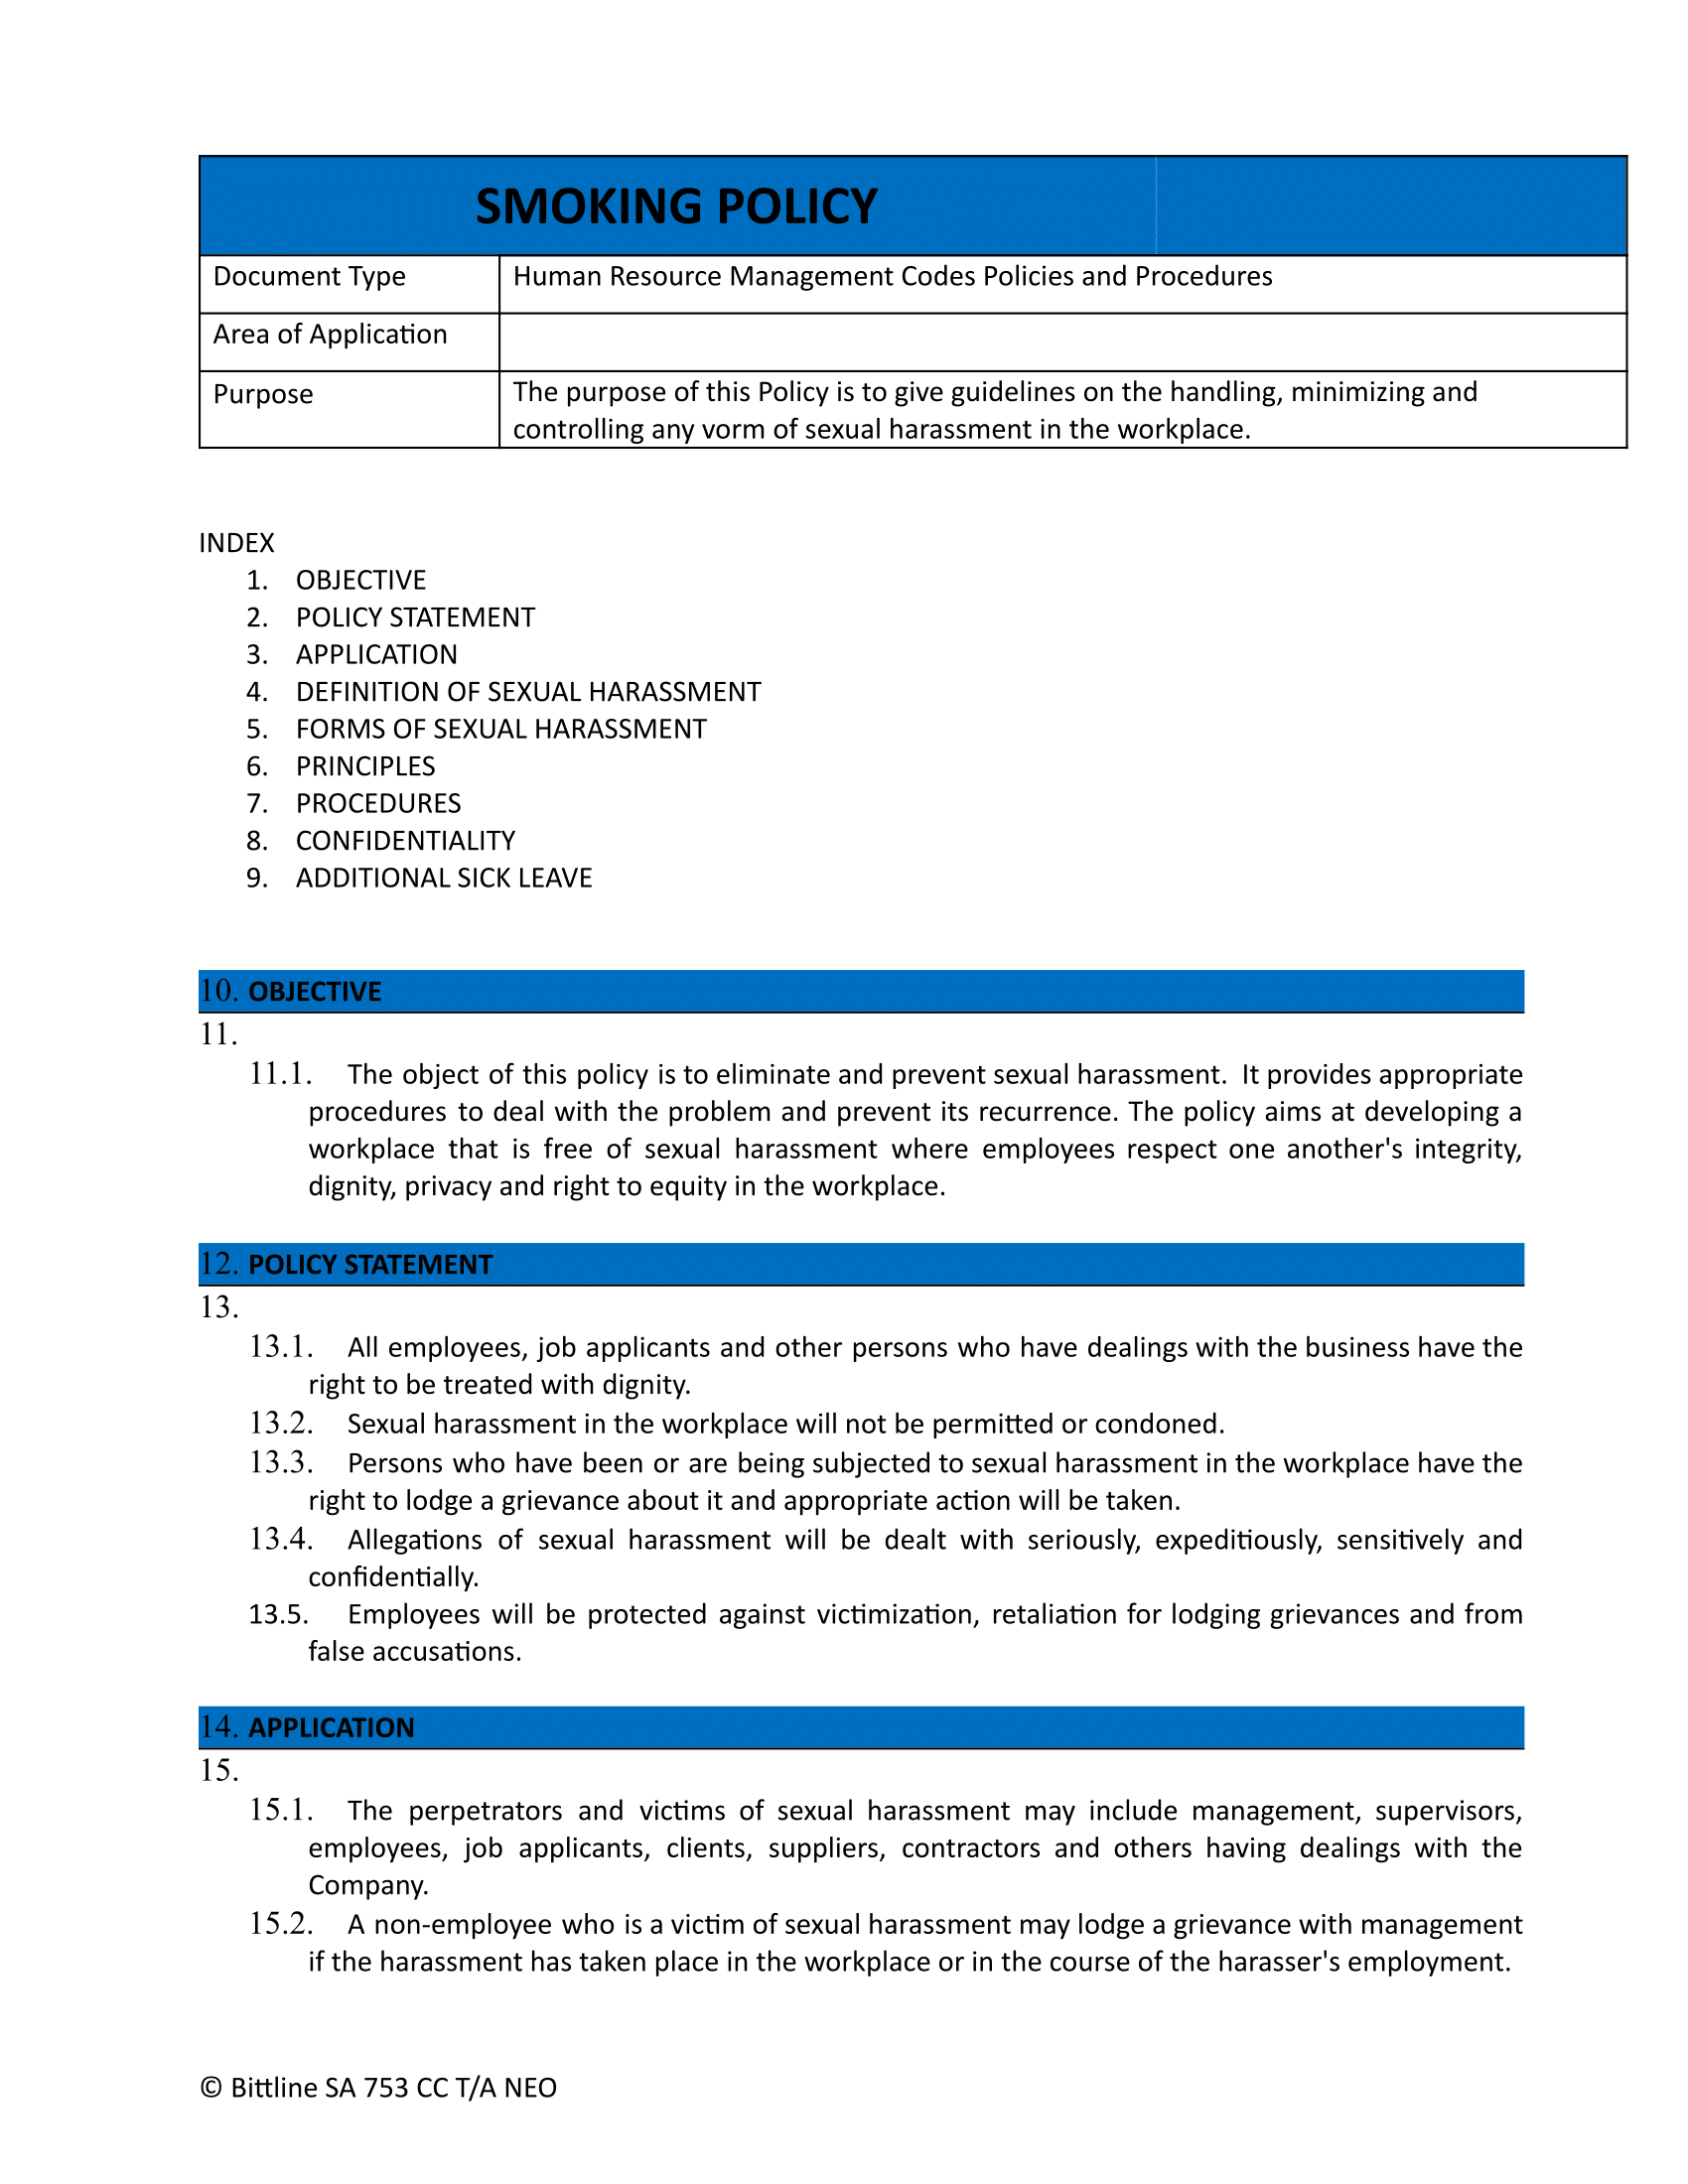 CP-004-SEXUAL-HARASSMENT-POLICY-AND-PROCEDURE - Google Docs-1